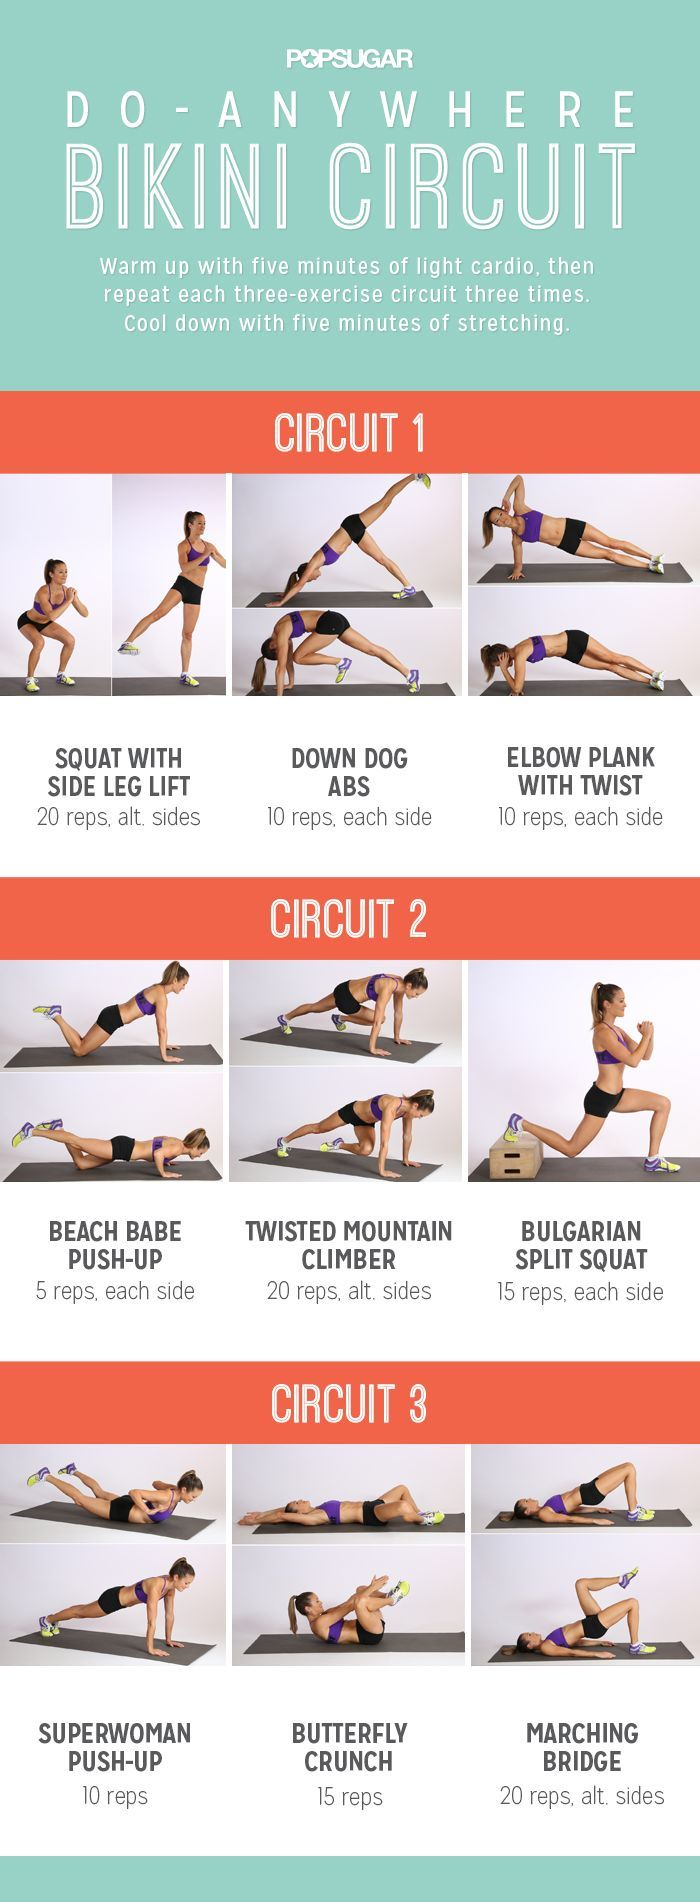 No equipment needed for this full-body workout, so you can do it anywhere!